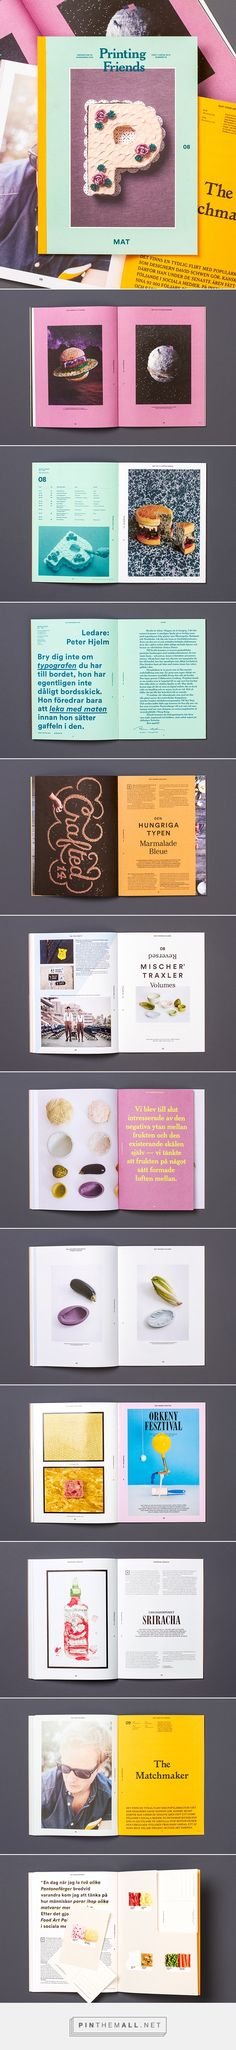 Printing Friends Magazine No 8 – Food on Behance. - a grouped images picture - Pin Them All Graphic Design Layouts, Book Design Layout, Print Layout, Book Cover Design, Graphic Design Illustration, Page Design, Graphic Design Inspiration, Layout Inspiration, Design Editorial